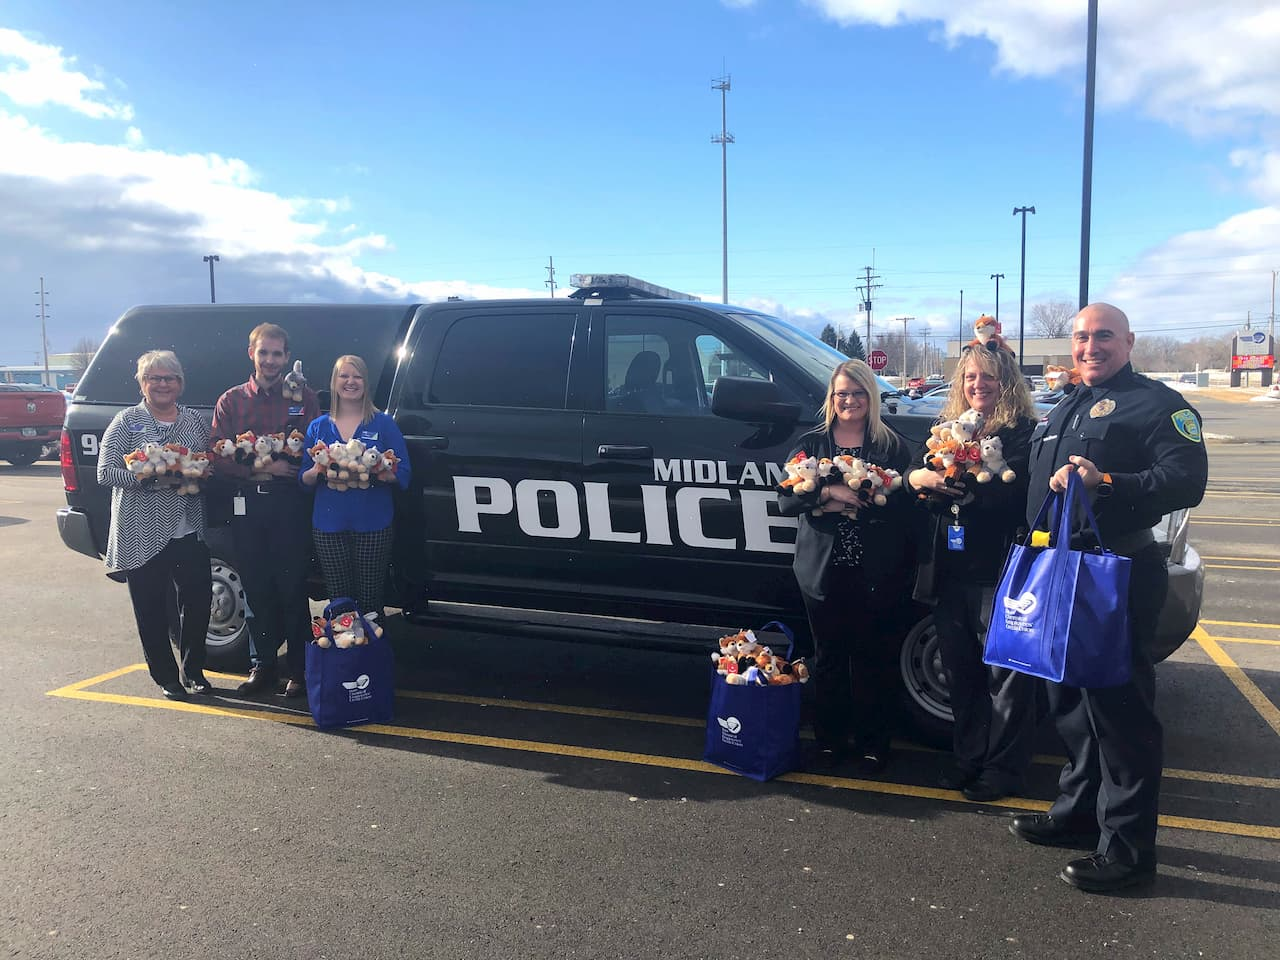 DCECU employees hold bags full of plush toys while standing in front of a police SUV with MPD Community Relations Officer Paul McDonald